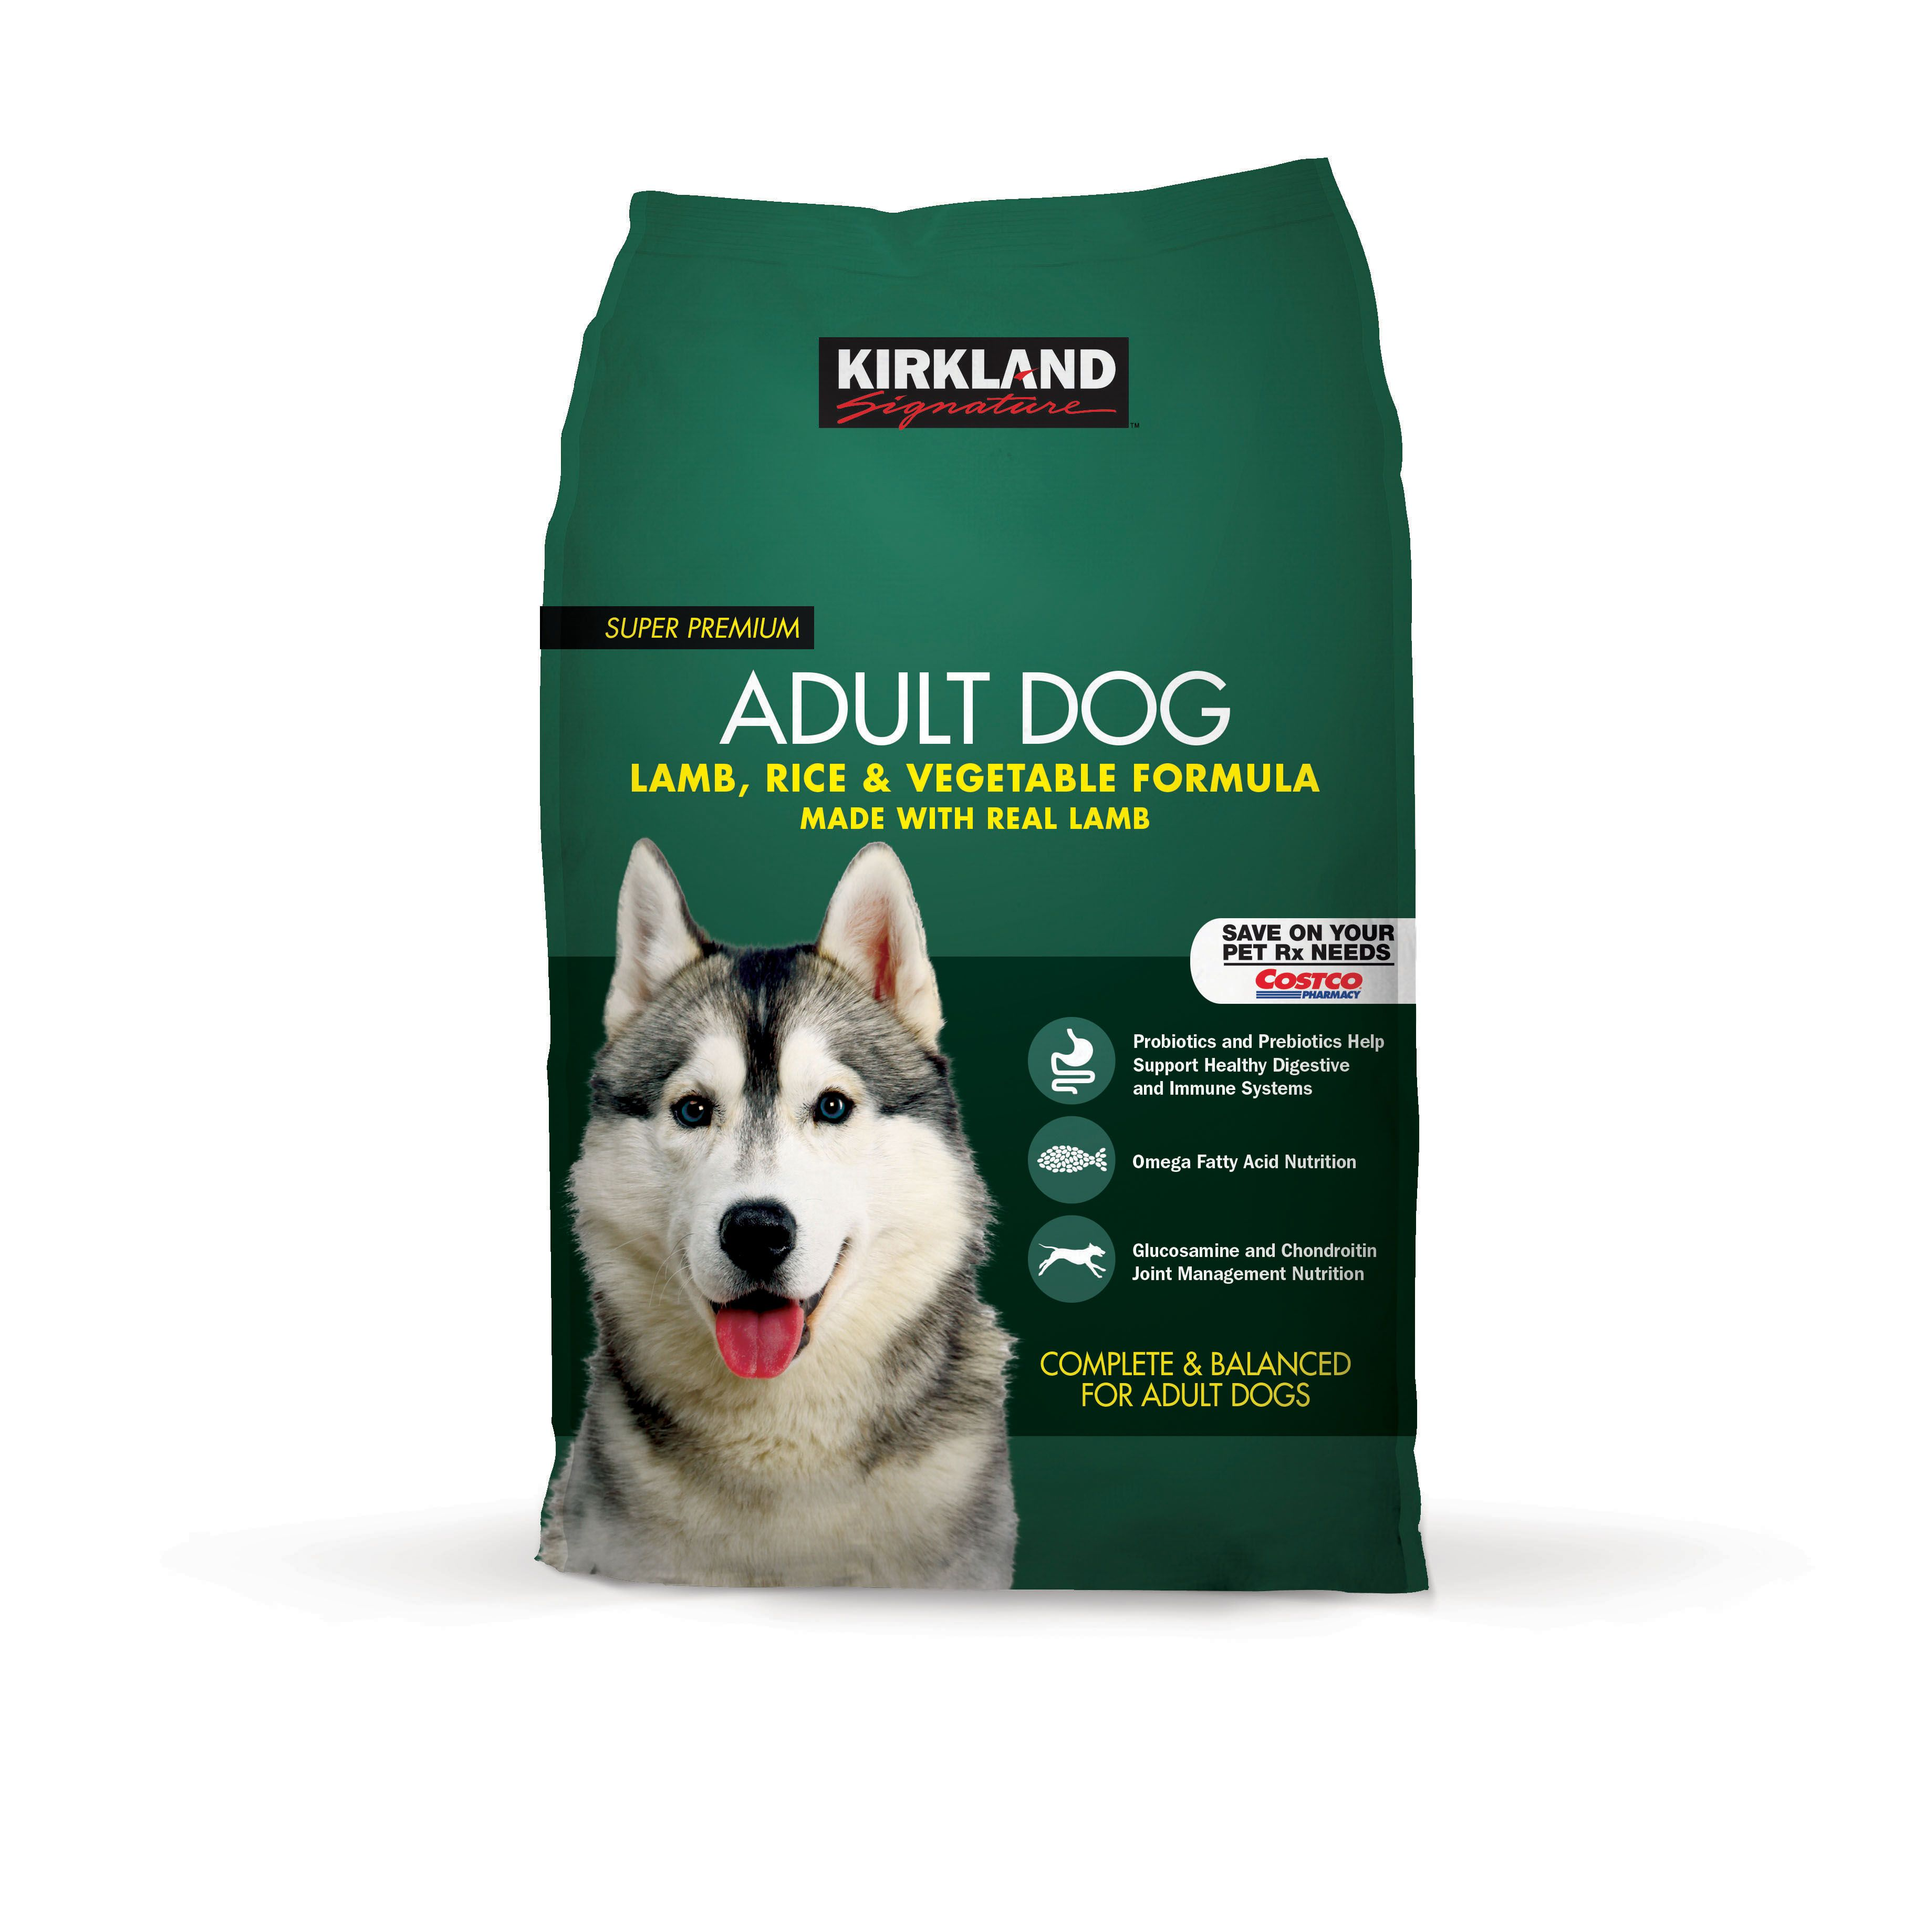 Kirkland Puppy Food Feeding Guide Kirkland Puppy Food Dog Food